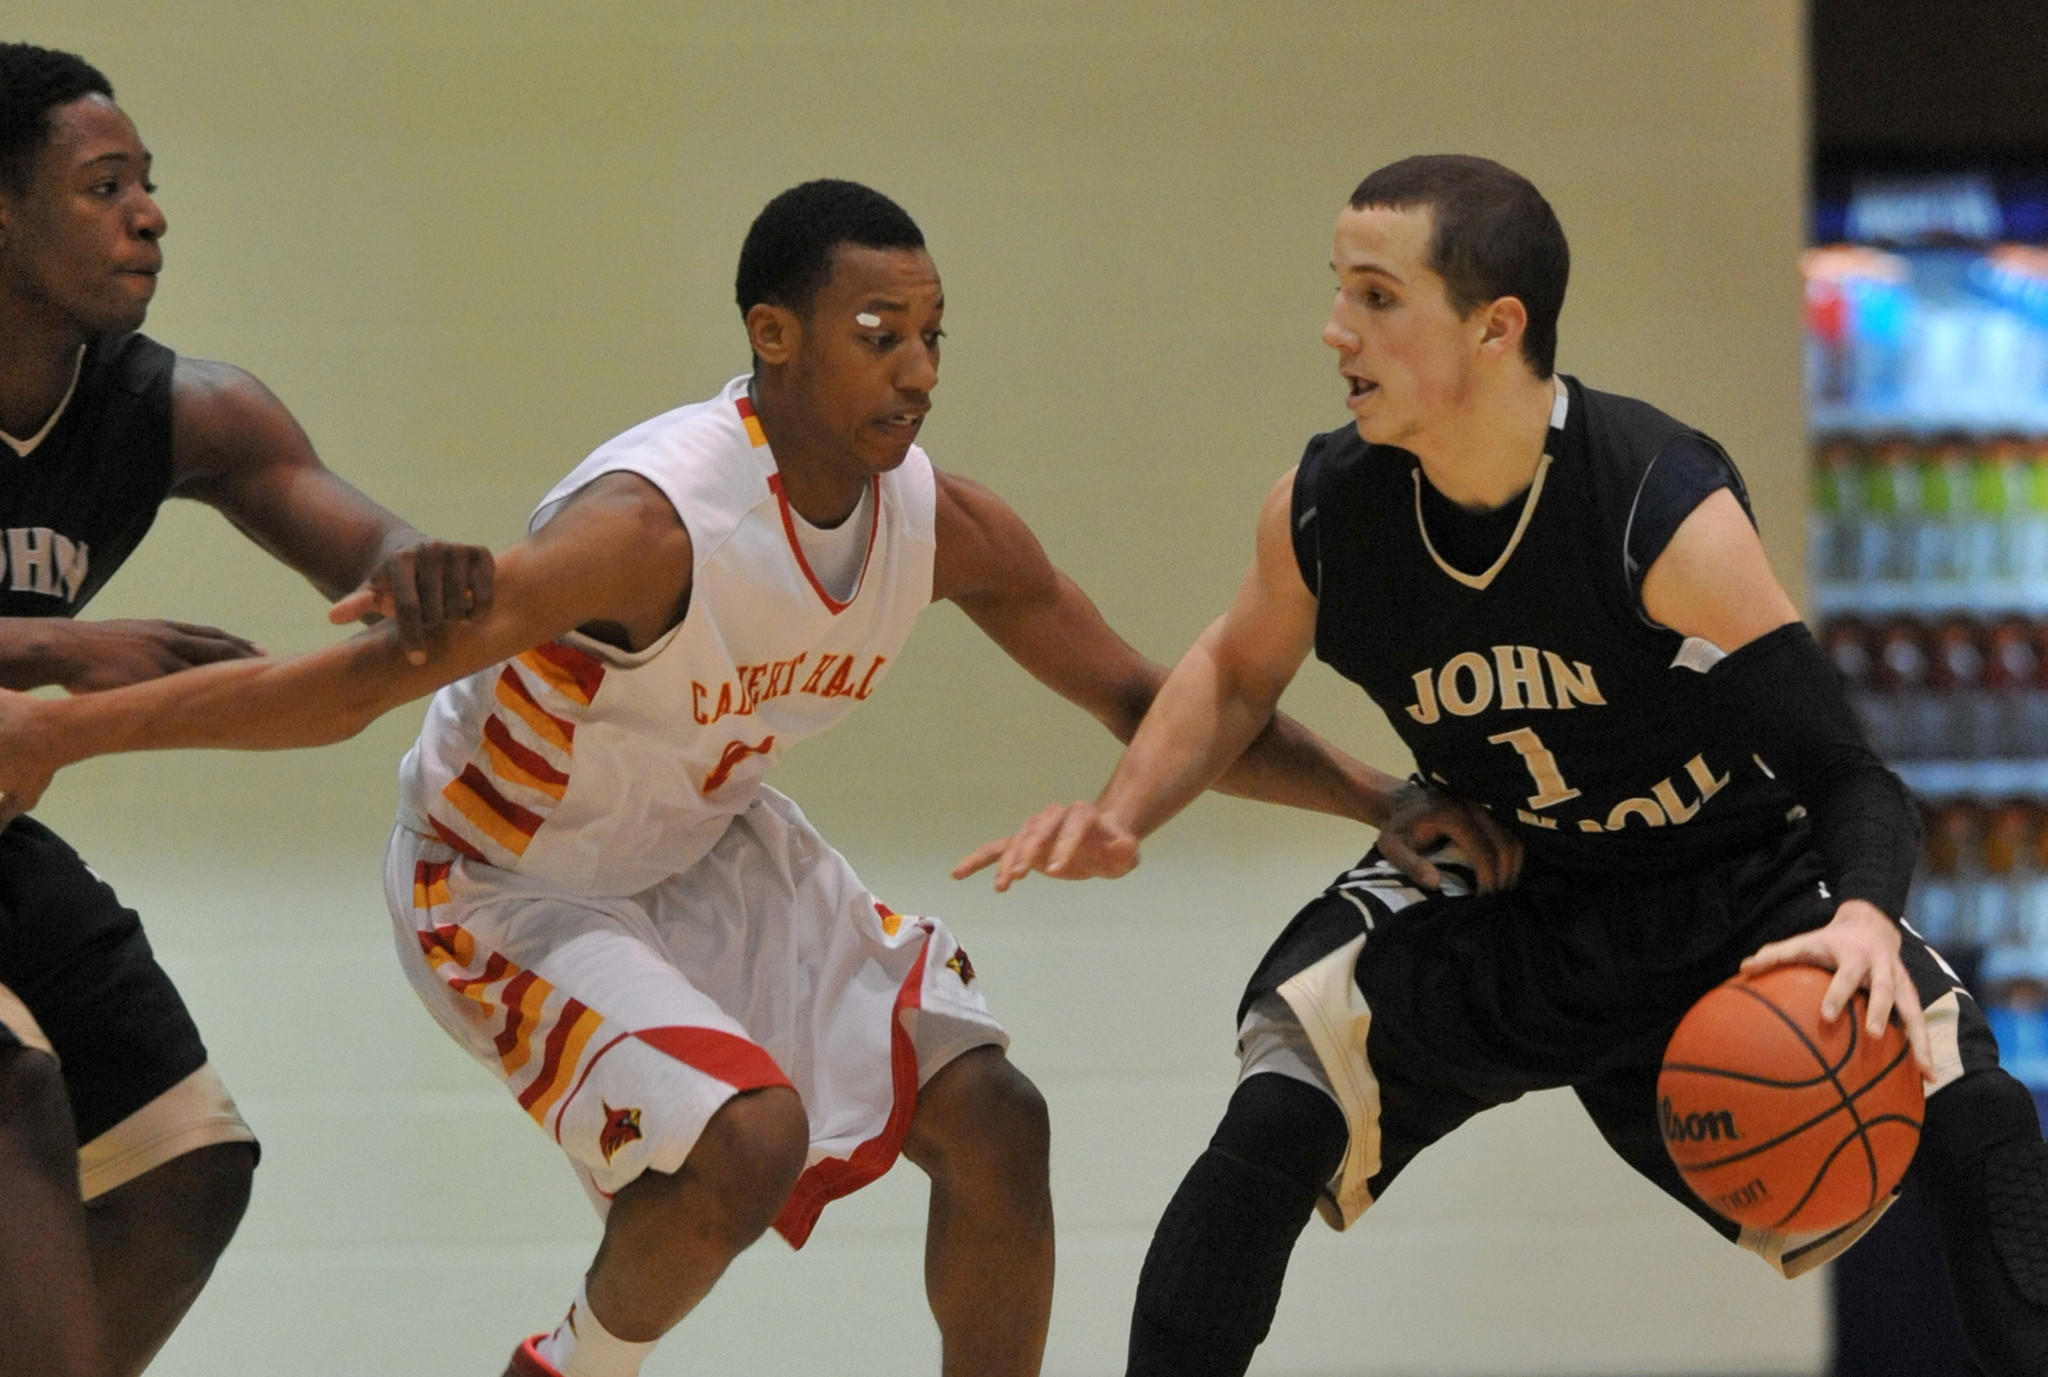 Calvert Hall's Sean Mayberry plays defense against Kimball Mackenzie as he drives toward the basket.